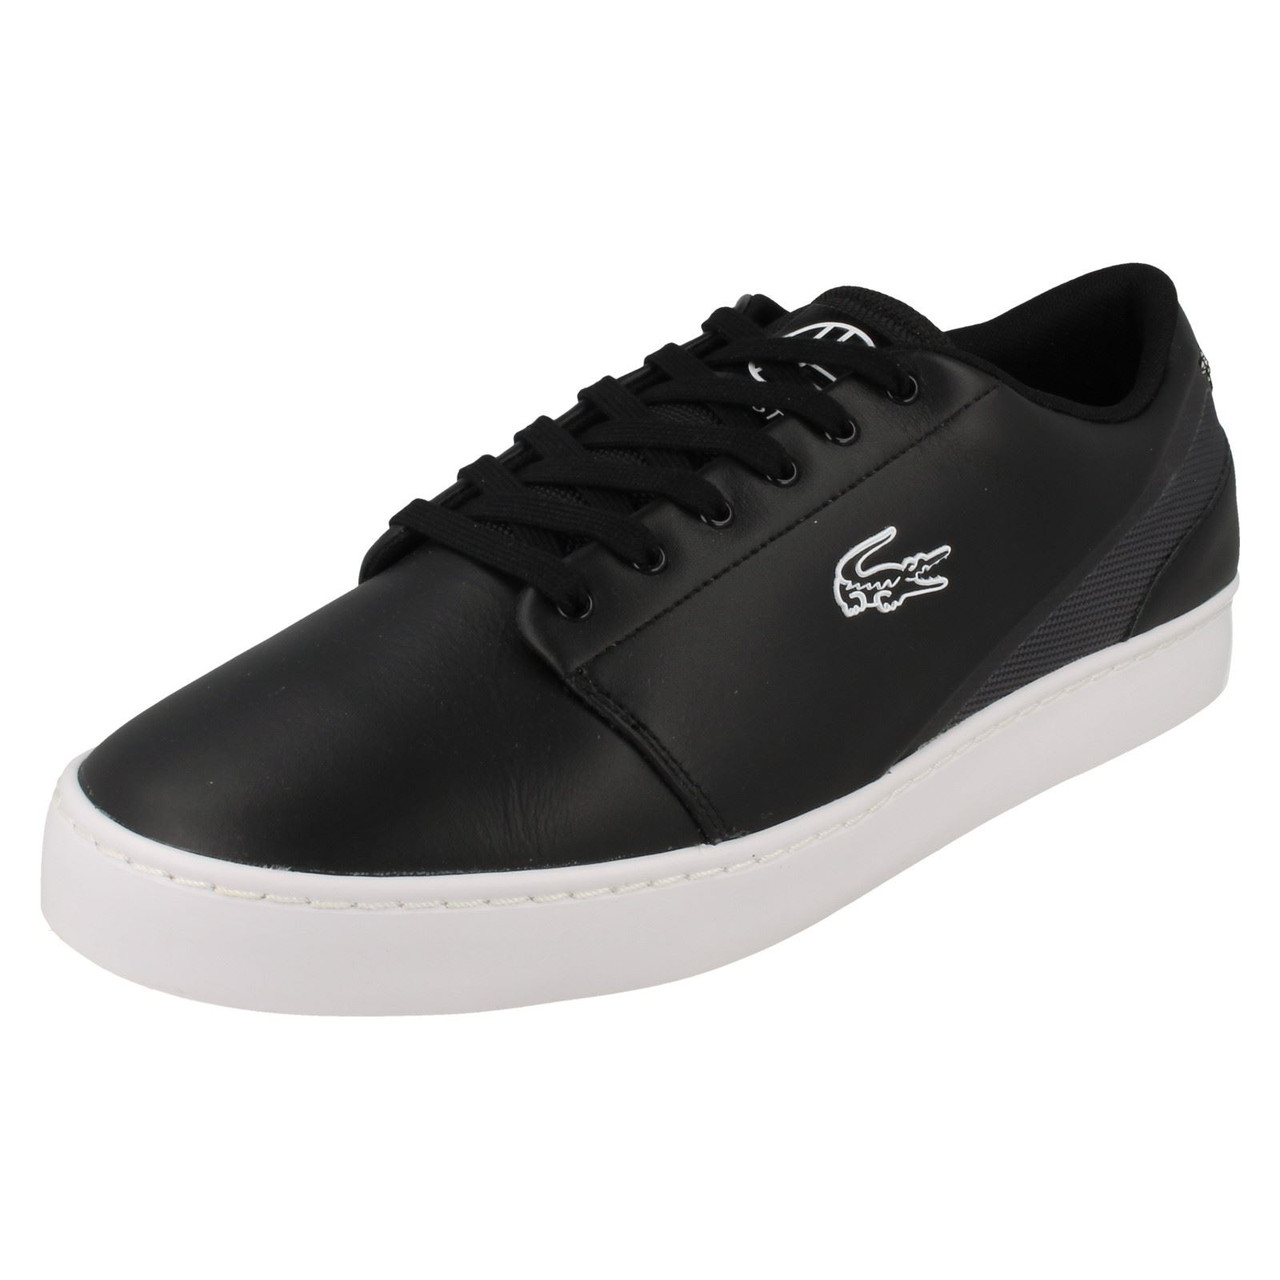 all black lacoste shoes